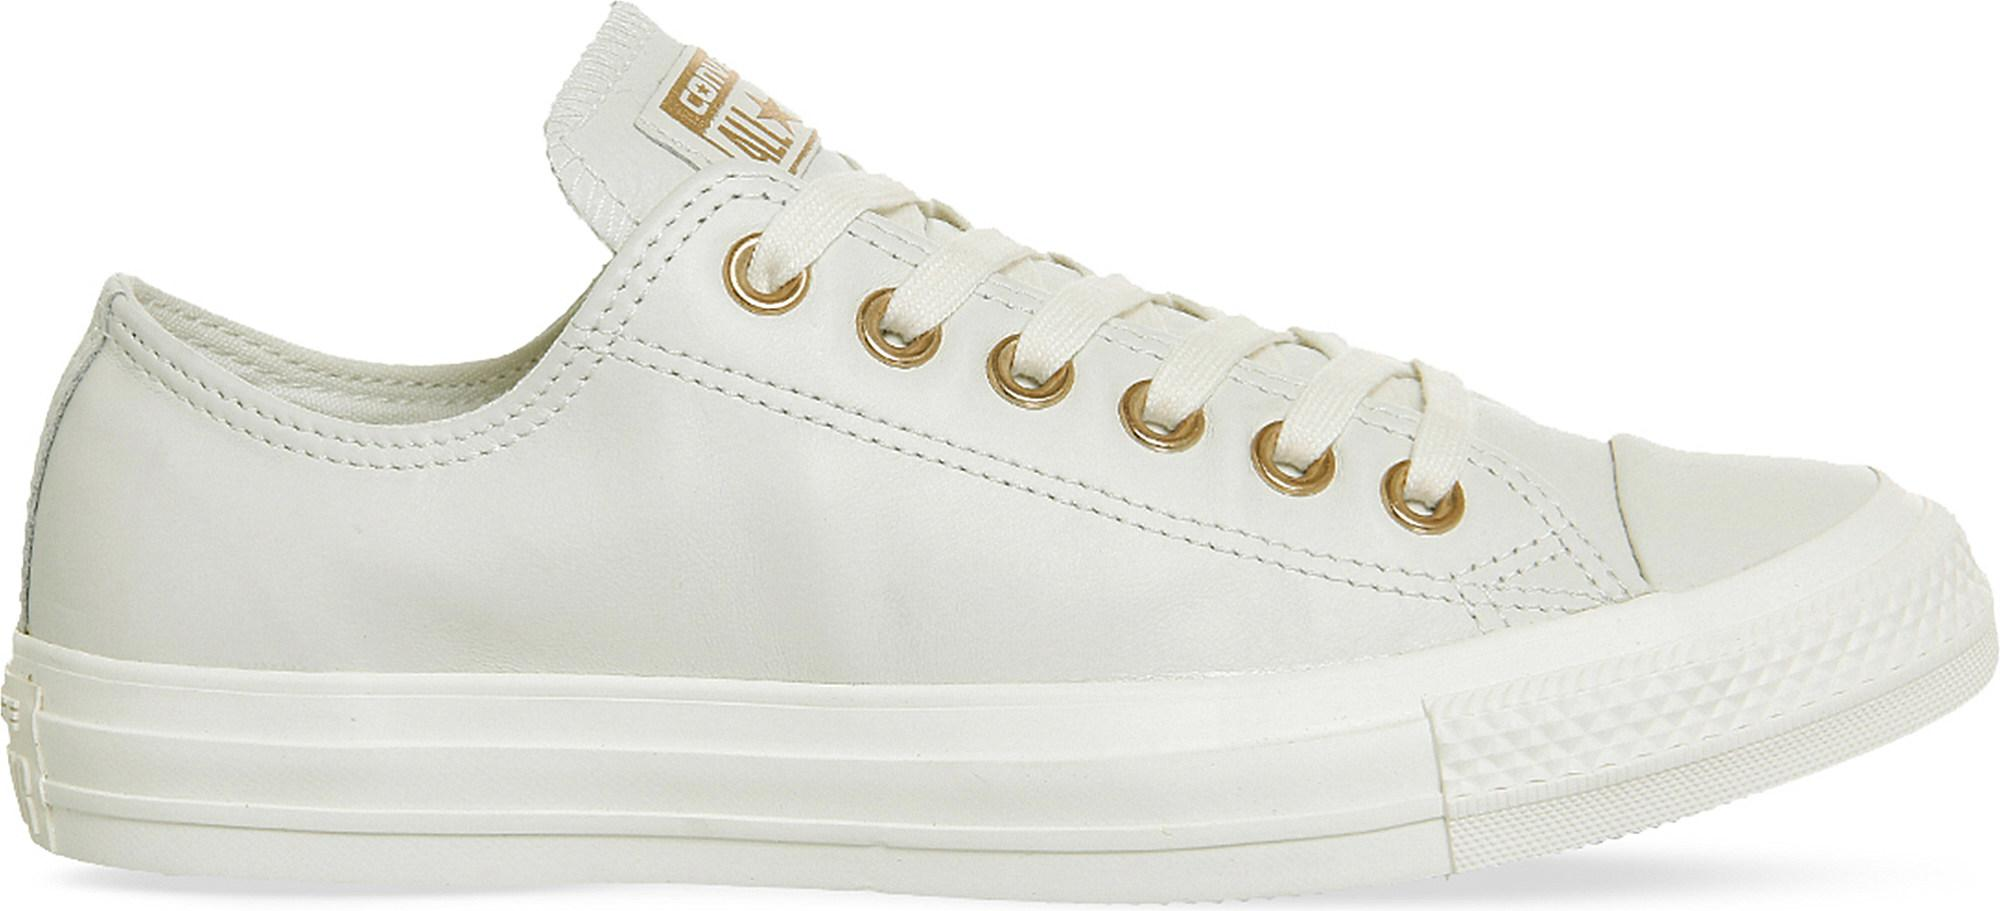 22ff7c5a7a83 Lyst - Converse All Star Low-top Leather Trainers in White